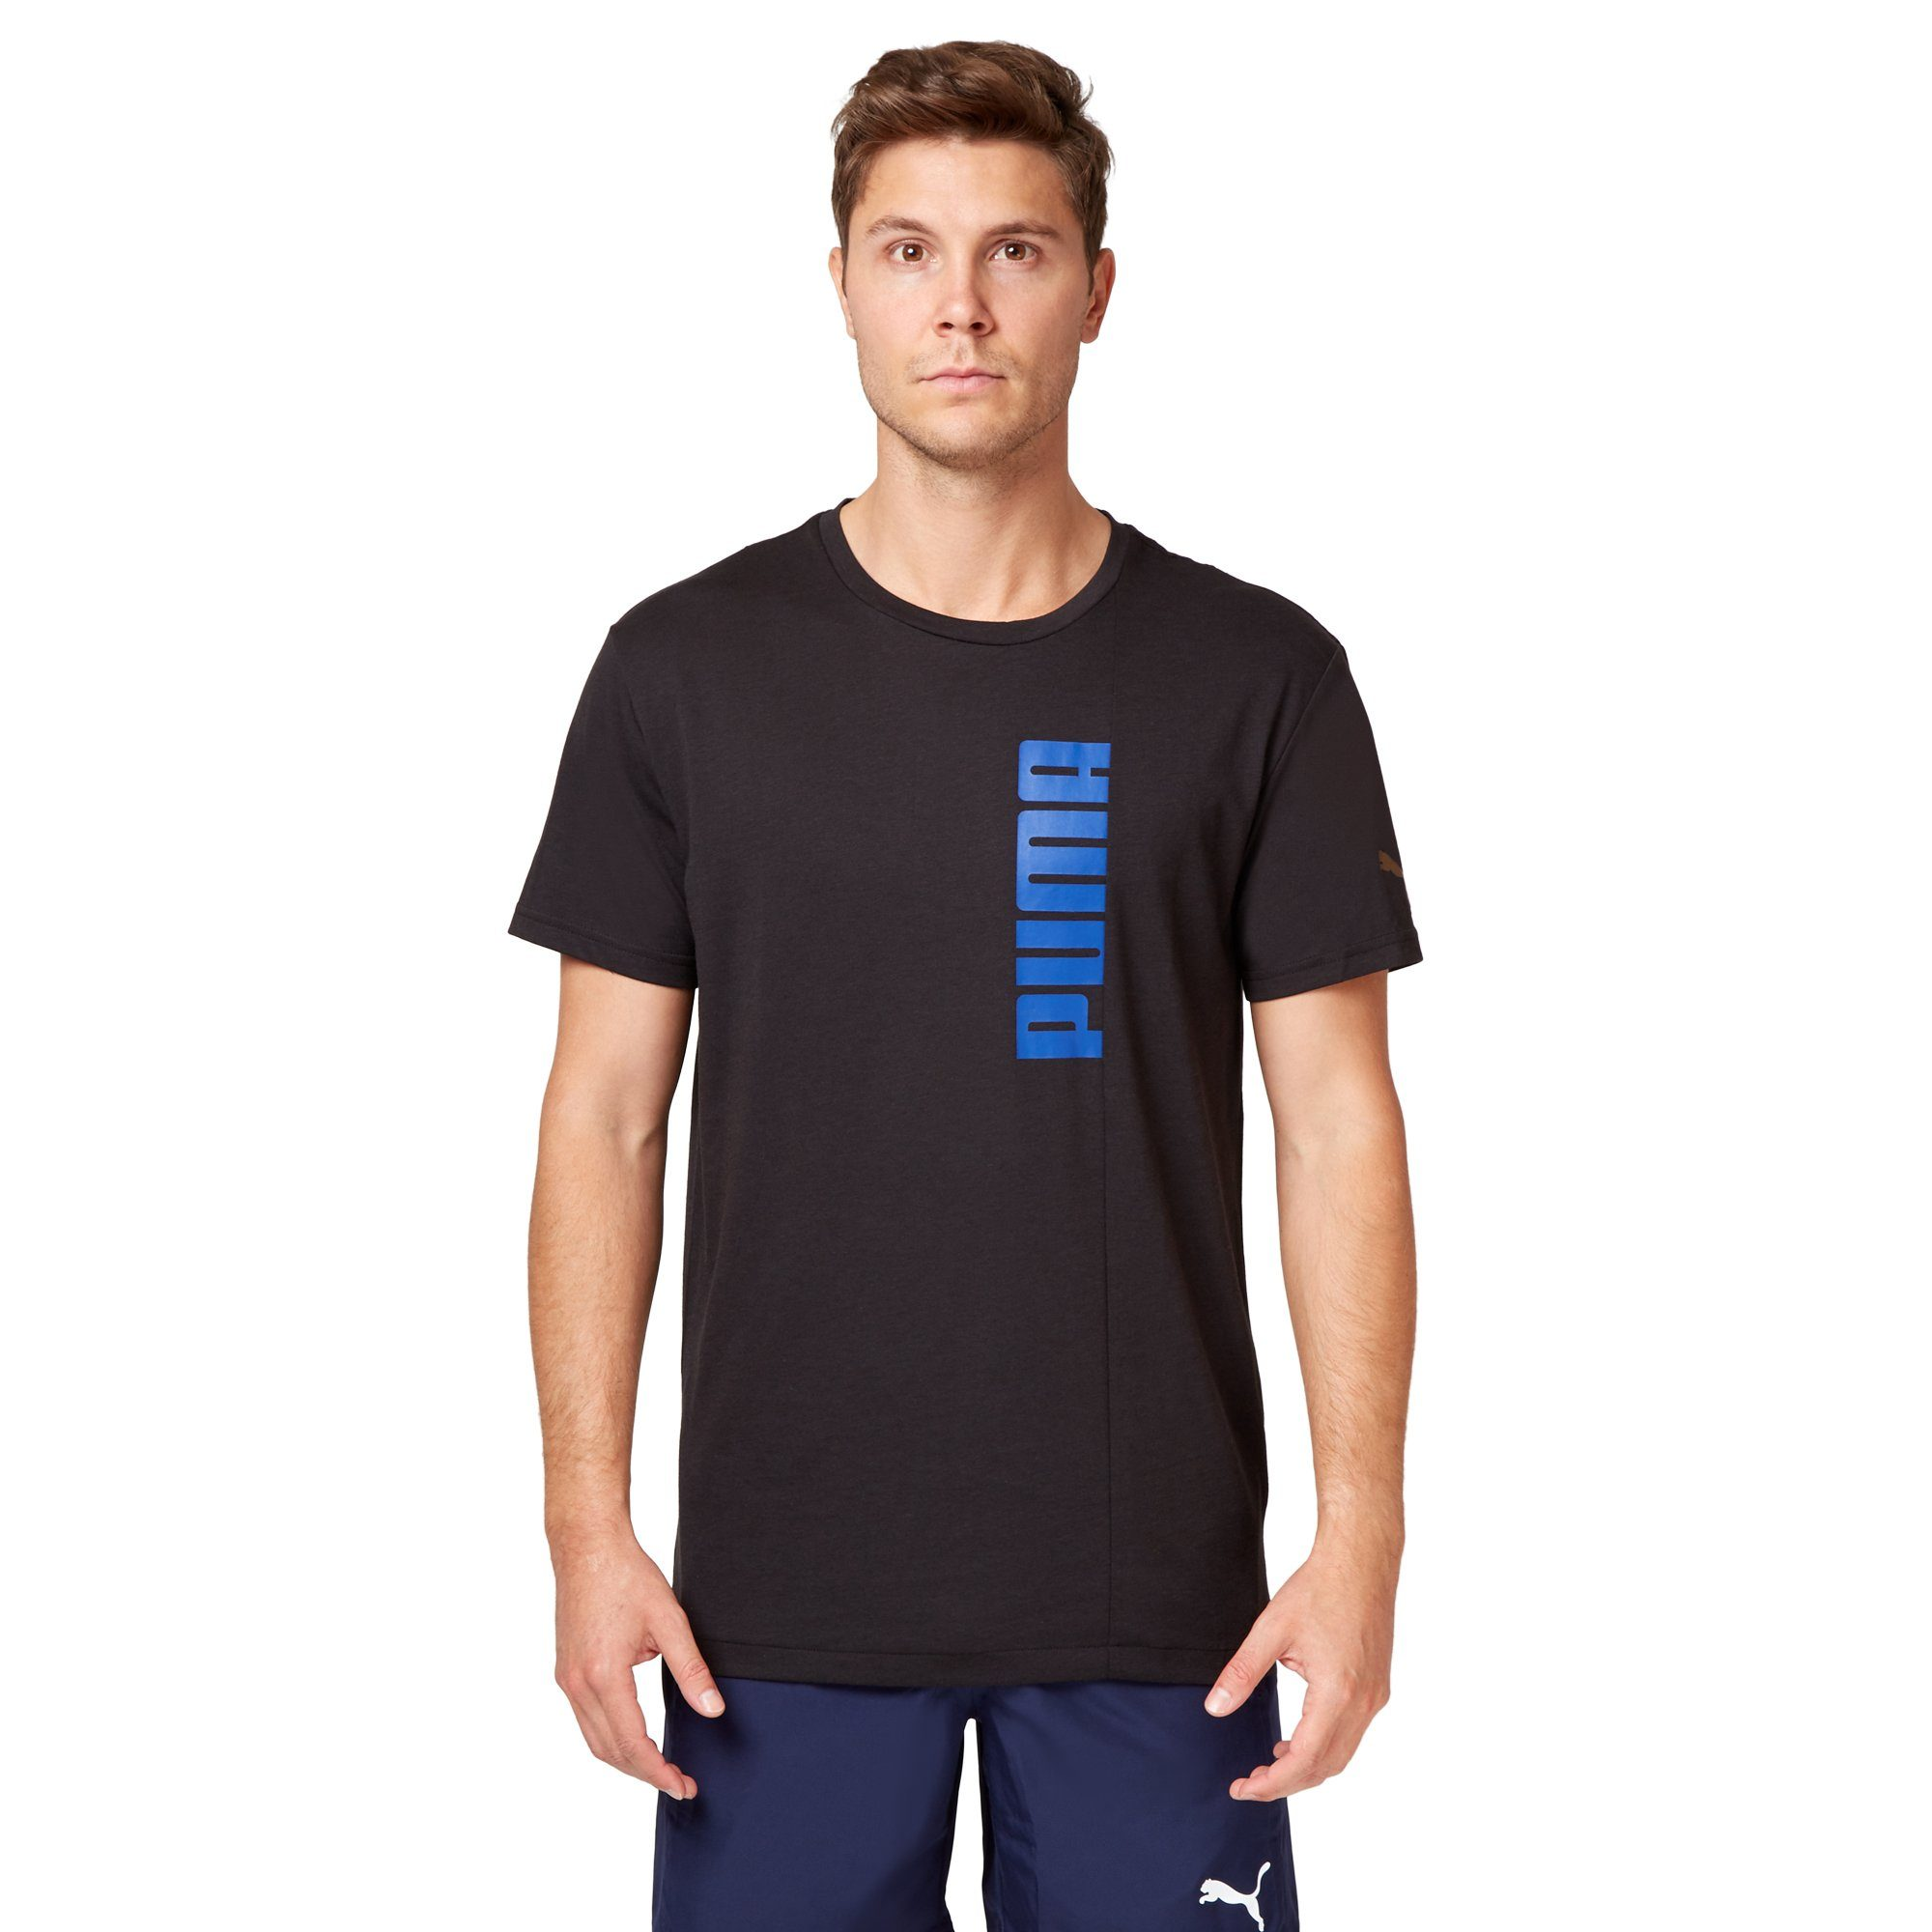 Puma Men's Energy Triblend Graphic Tee - Black Apparel Puma  (2122606051387)